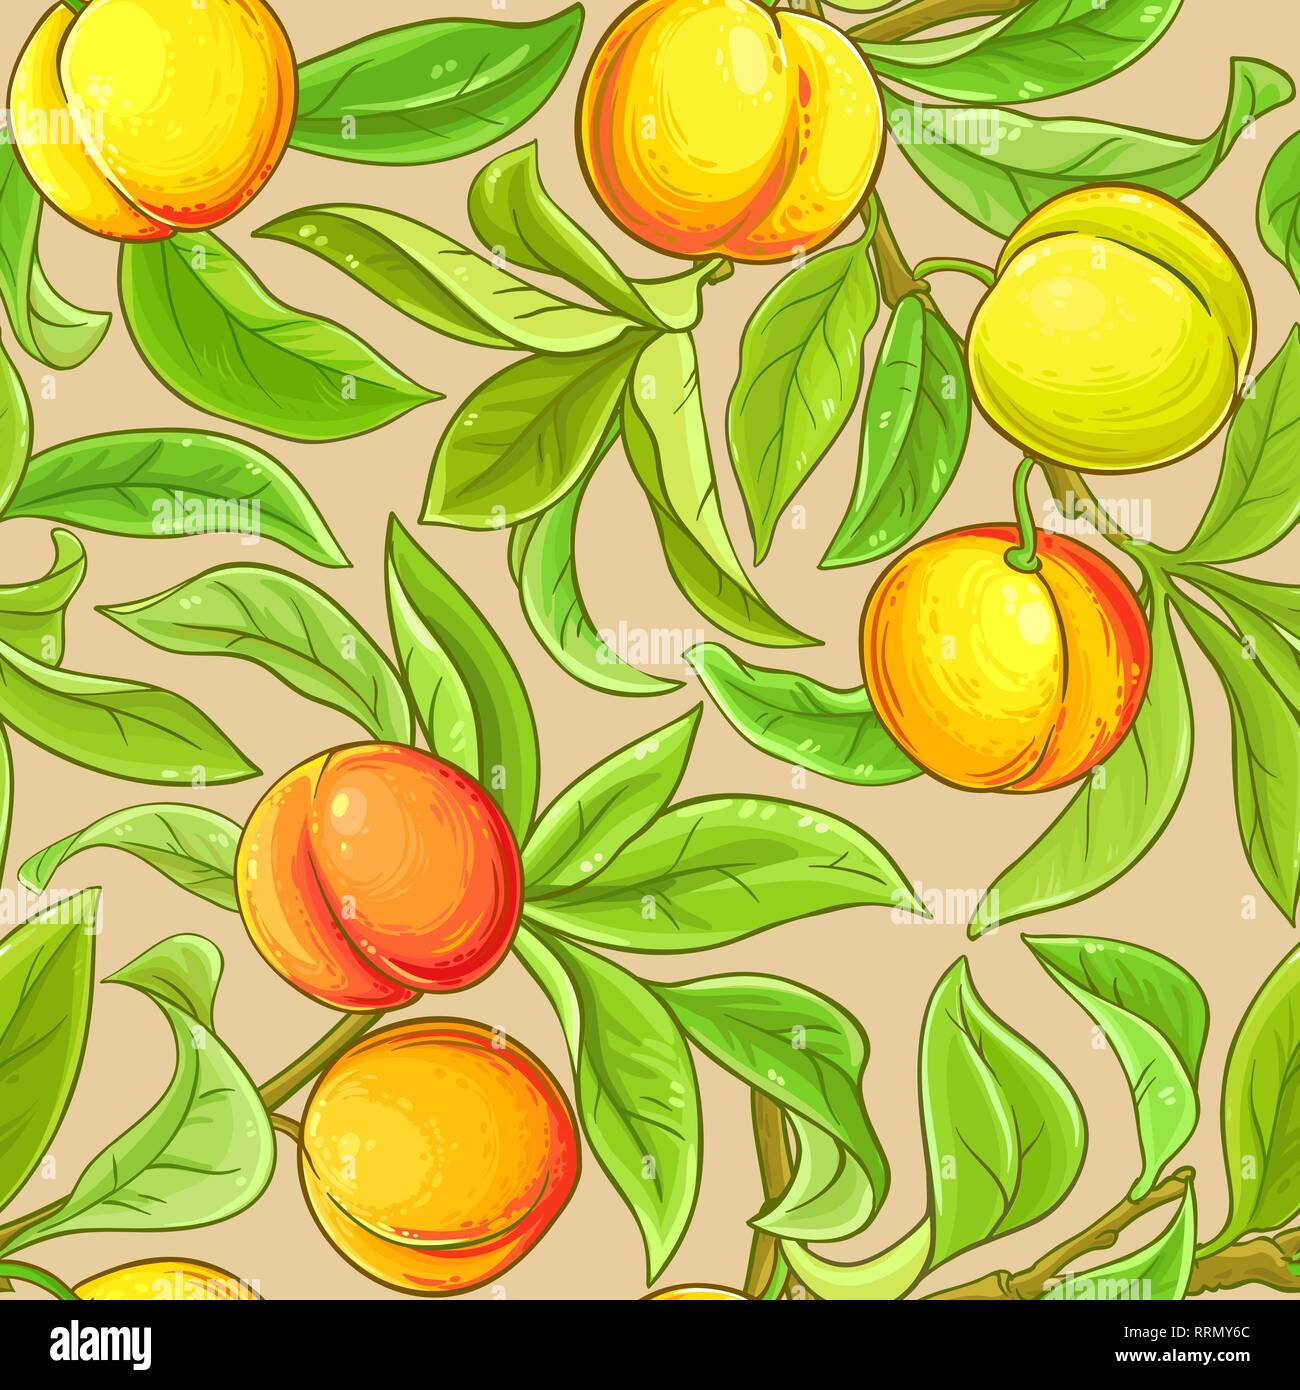 Download 5200 Background Alam Peach Terbaik